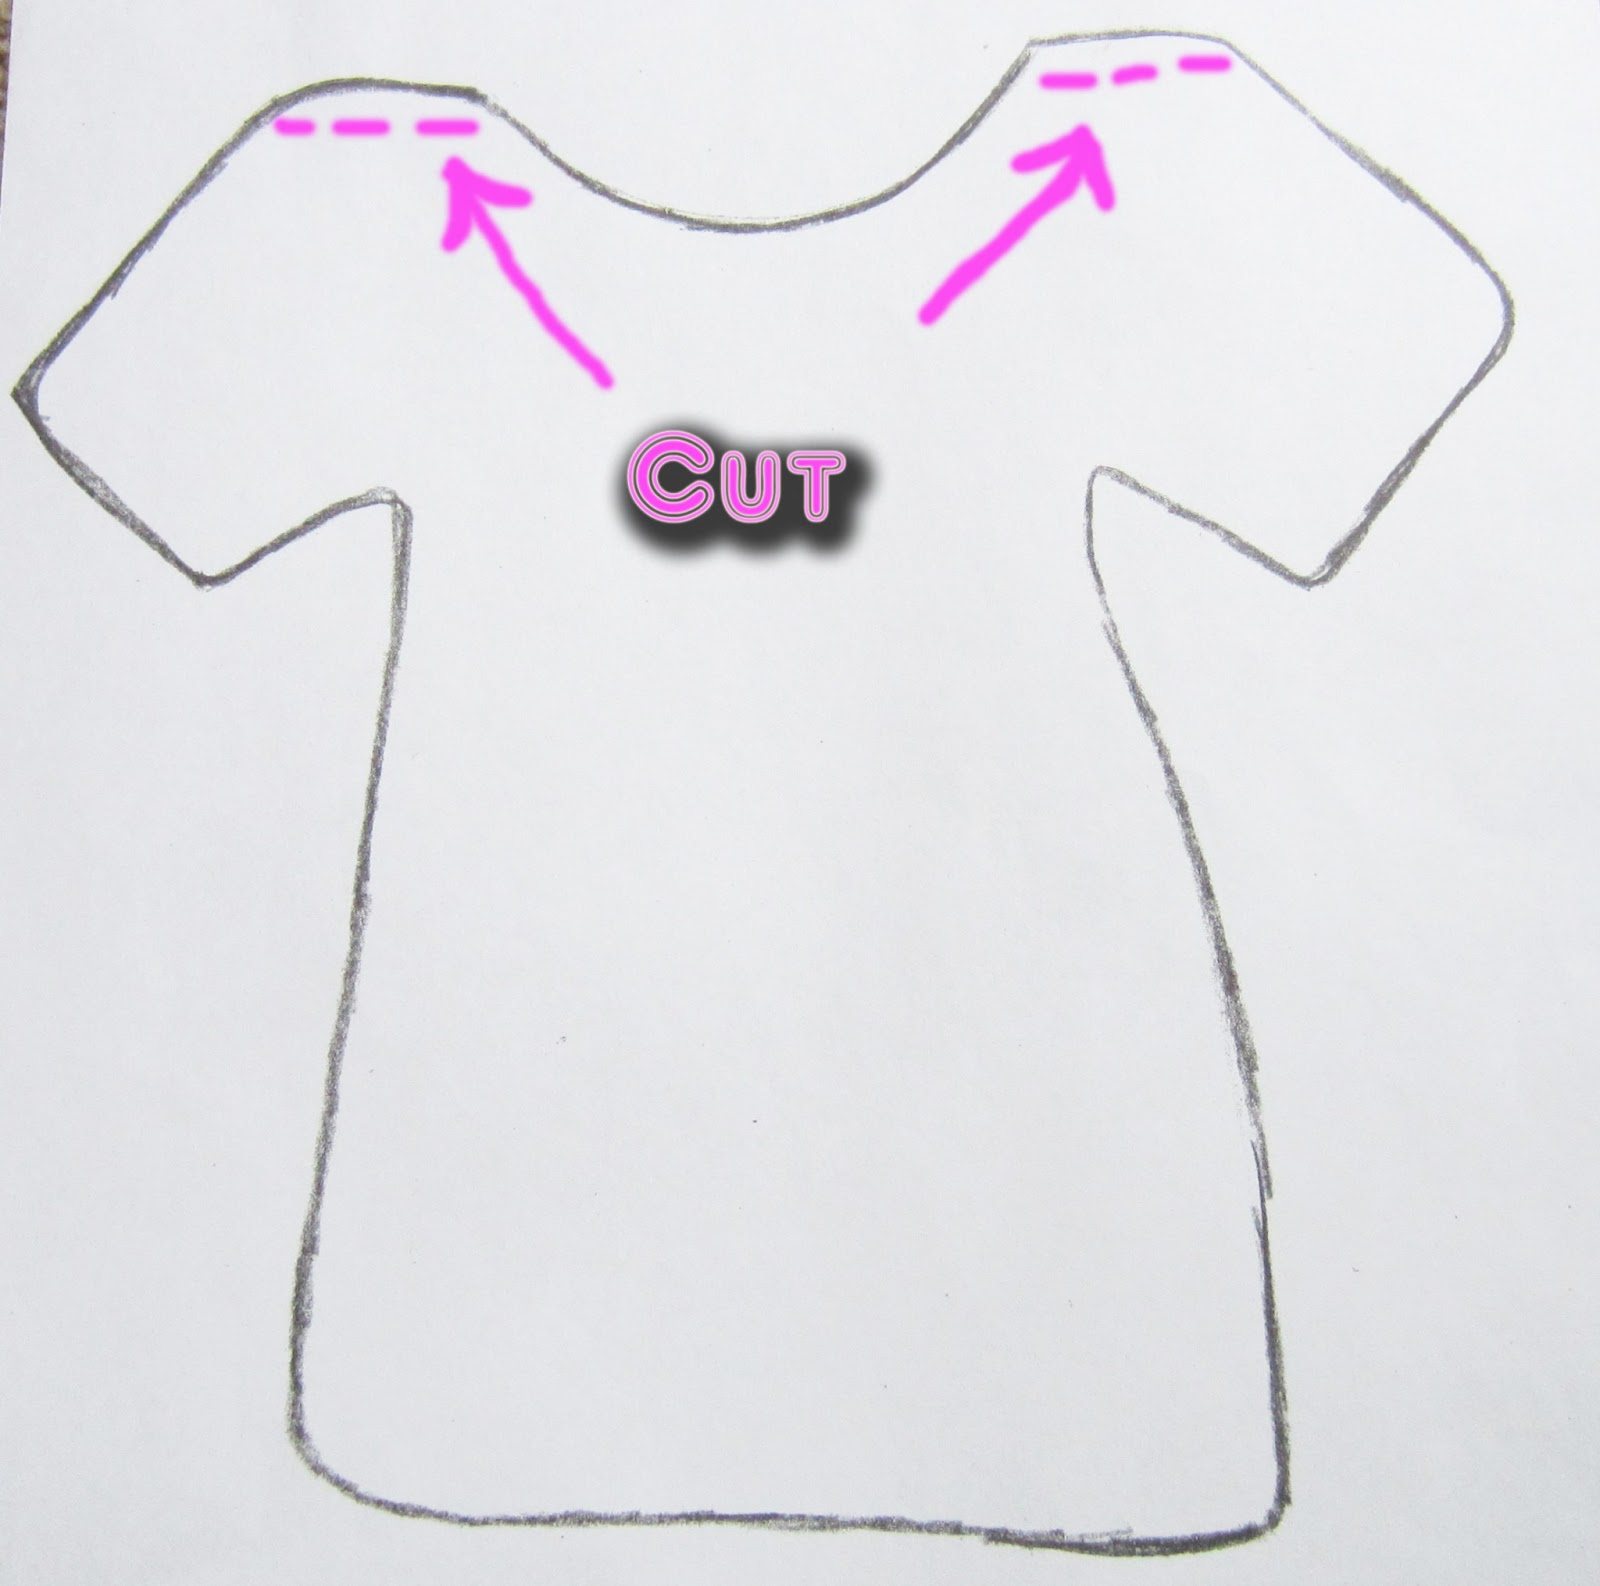 EasyMeWorld: How To Style Your T-Shirt - 4 Styles